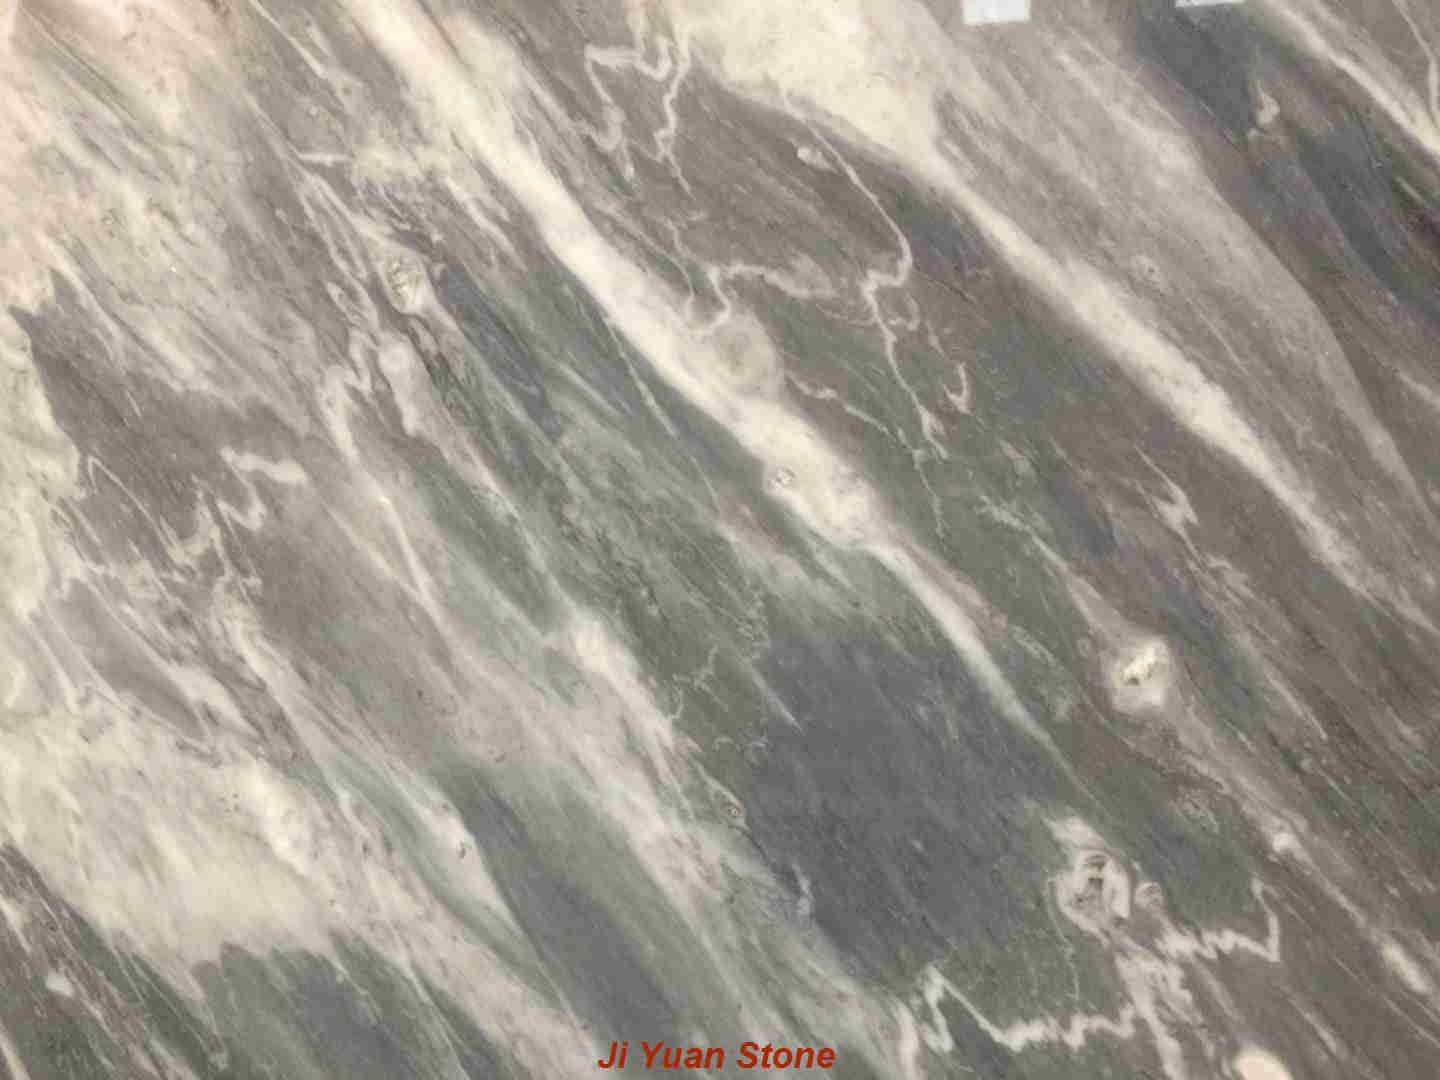 What is the six-sided protection of marble colors for flooring? How's the effect?